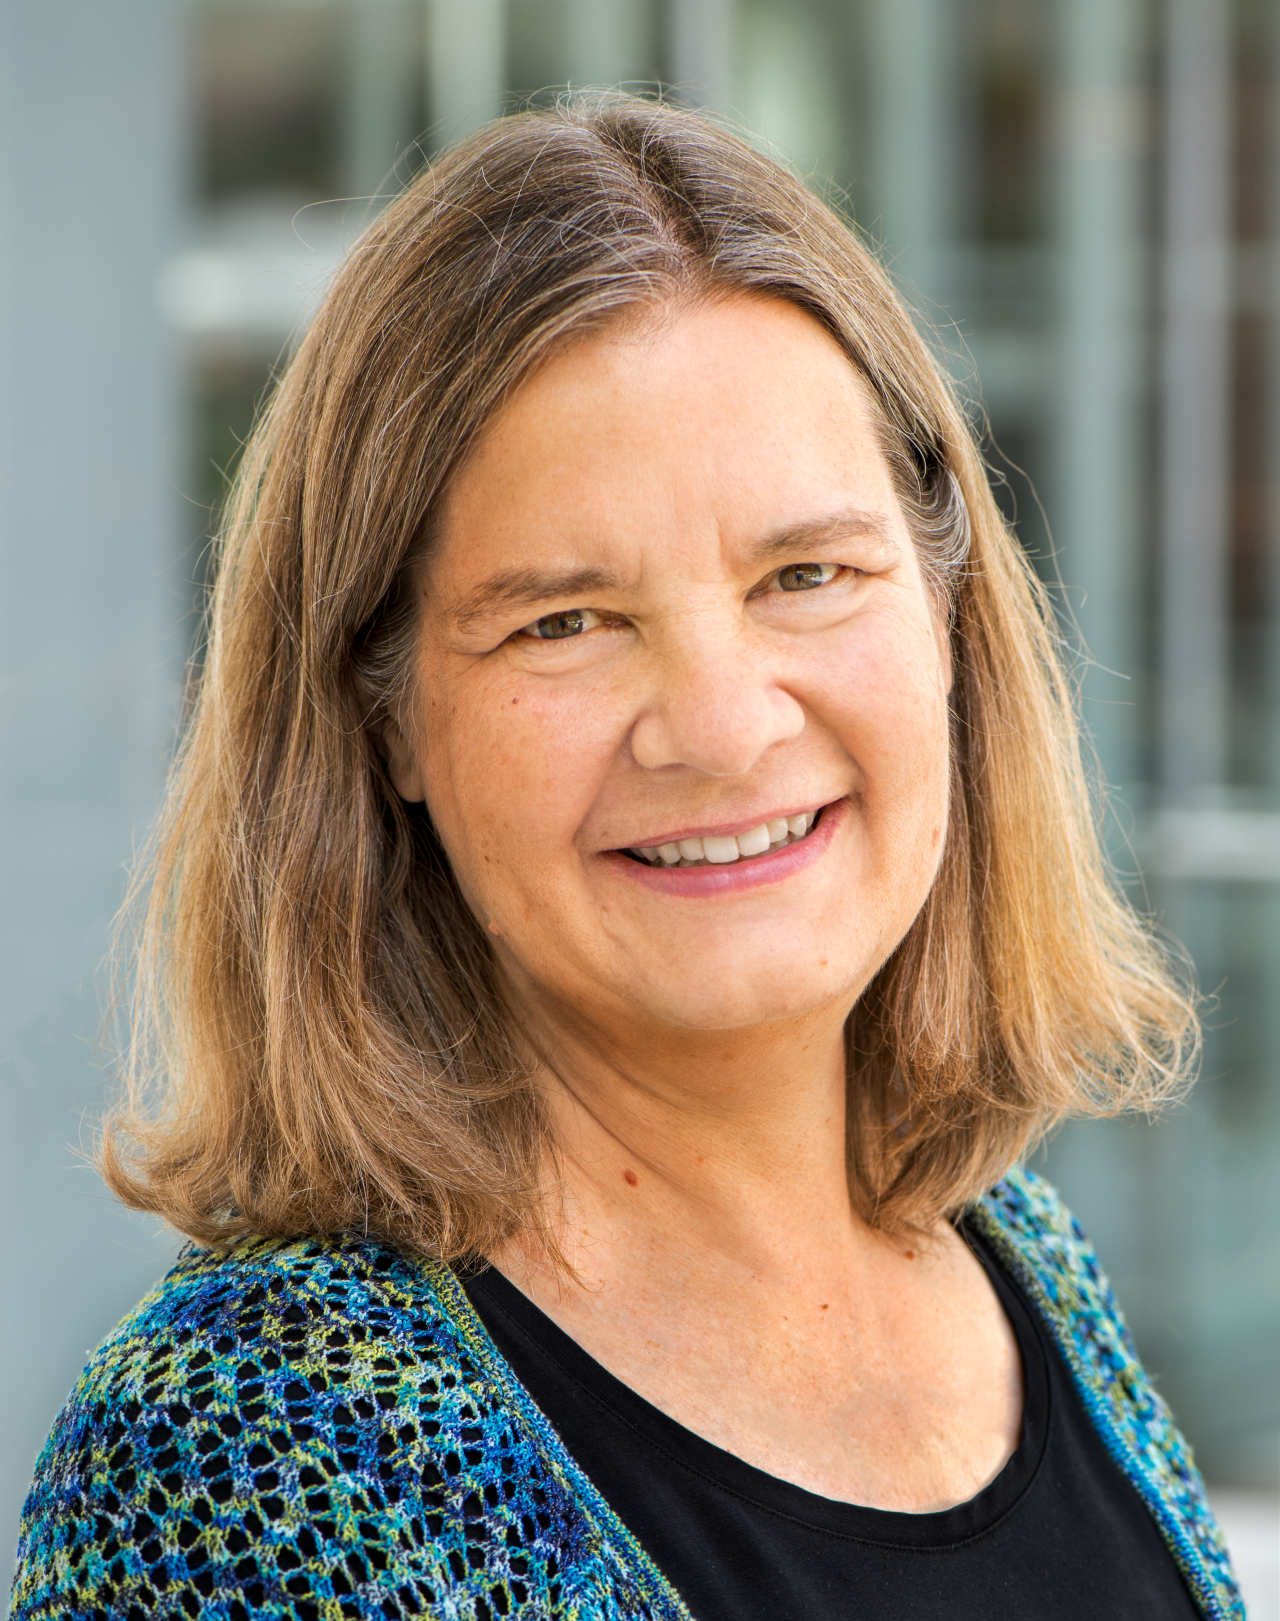 Professor Miranda A. Schreurs of Environmental and Climate Policy at Technical University of Munich in Germany (Miranda A. Schreurs)